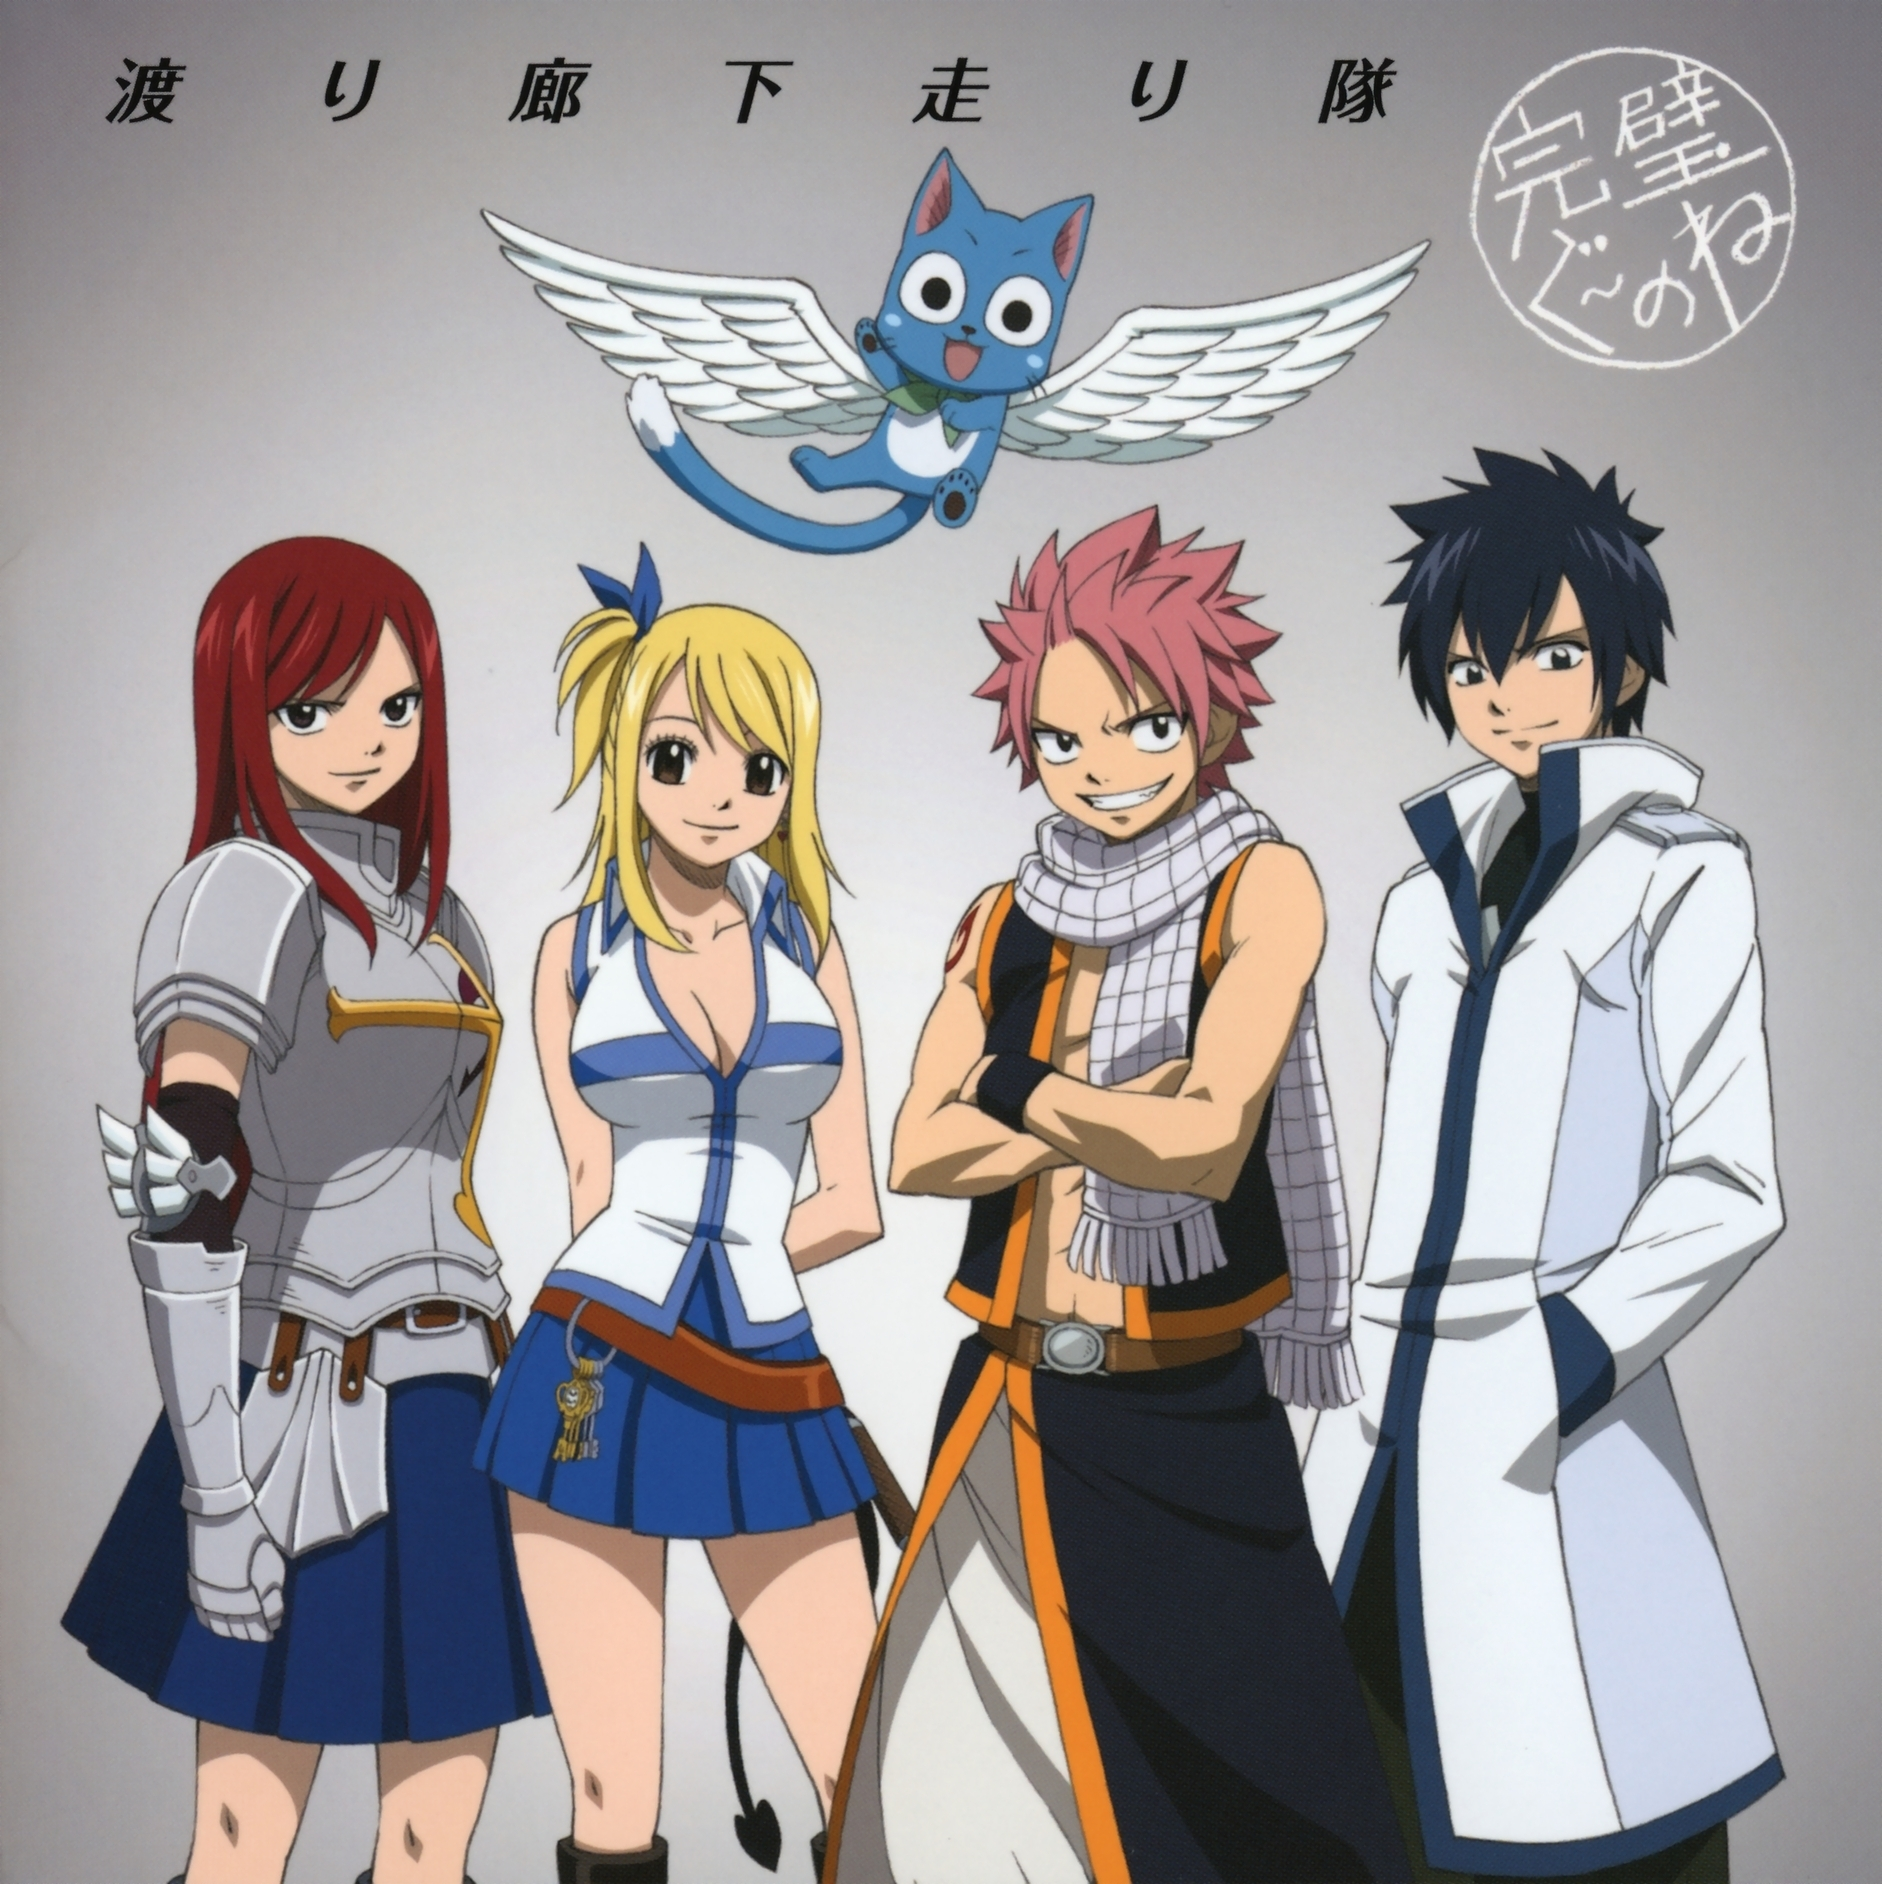 Fairy Tail Images Fairy Tail HD Wallpaper And Background Photos